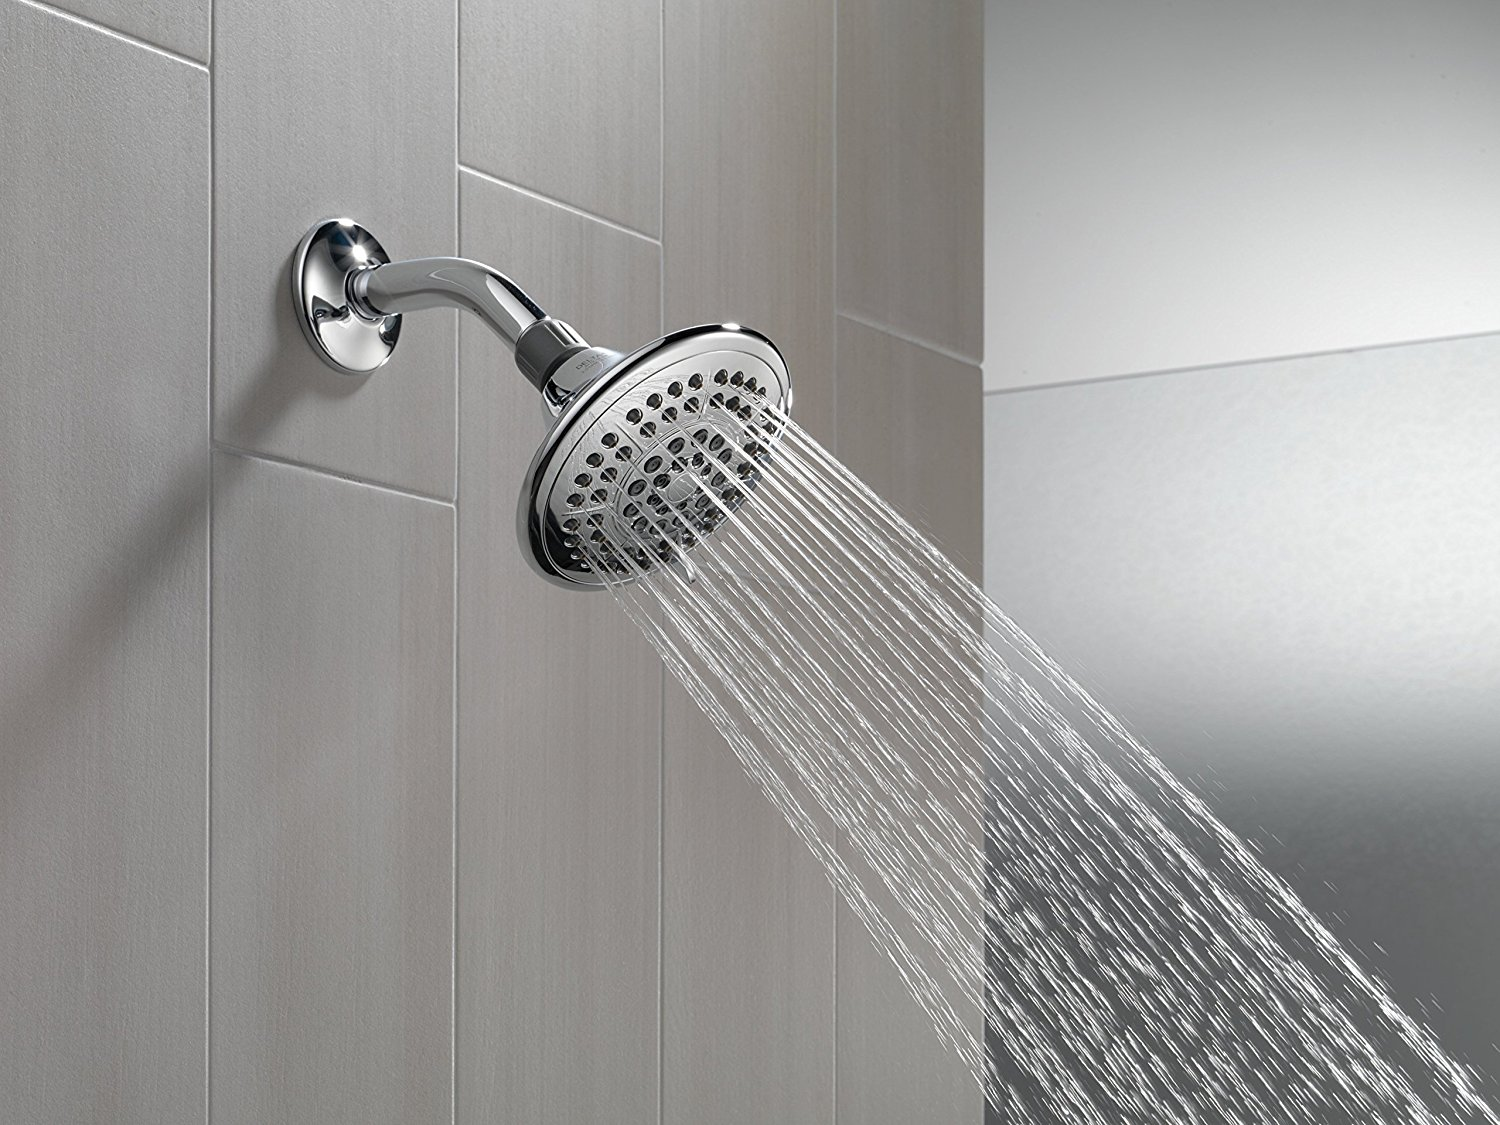 Delta 75554 with 5 Setting Showerhead, Chrome, Chrome finish By ...